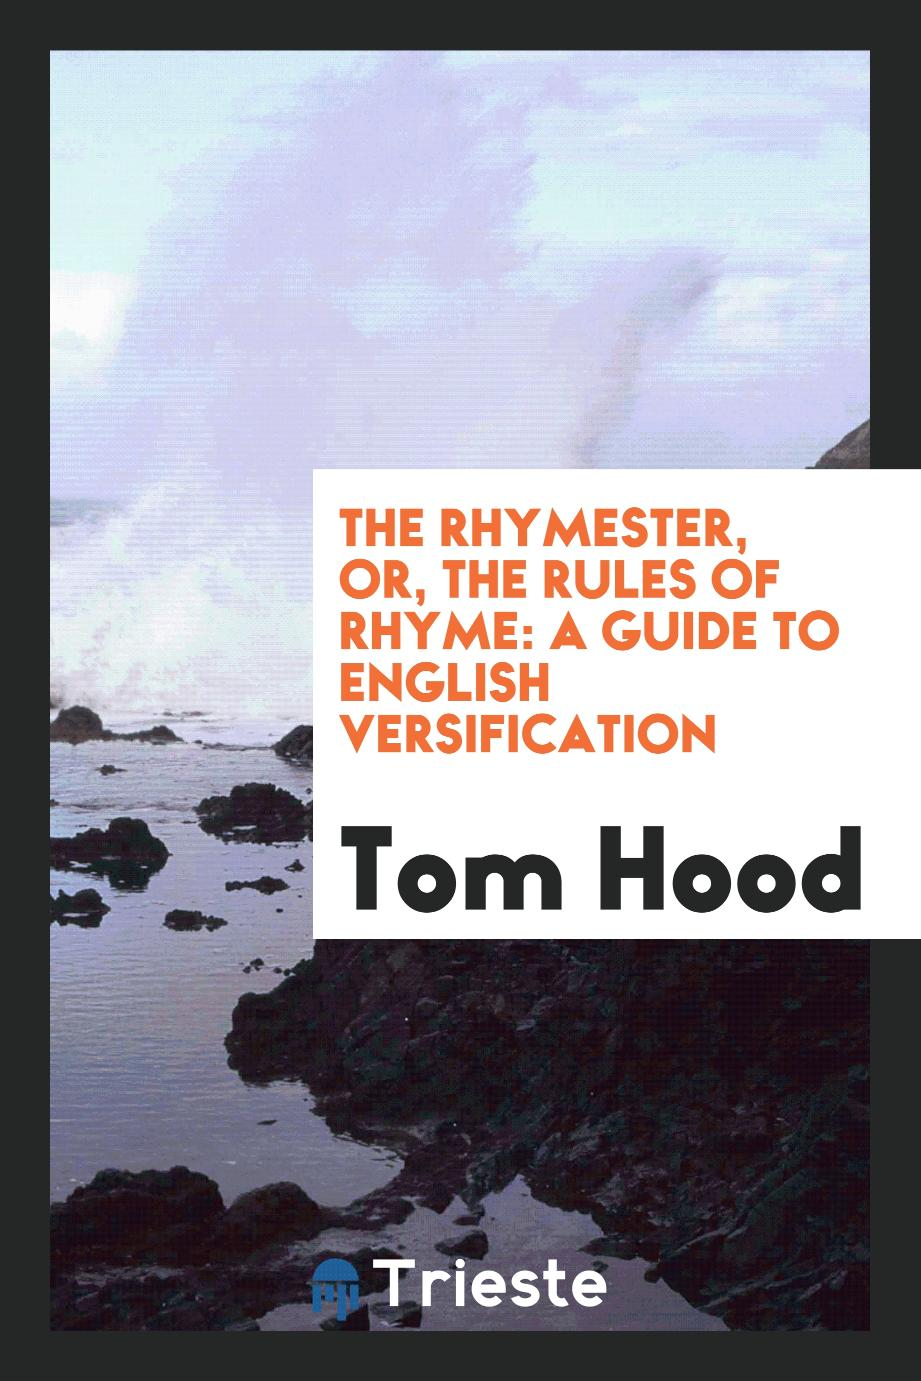 The Rhymester, or, the Rules of Rhyme: A Guide to English Versification